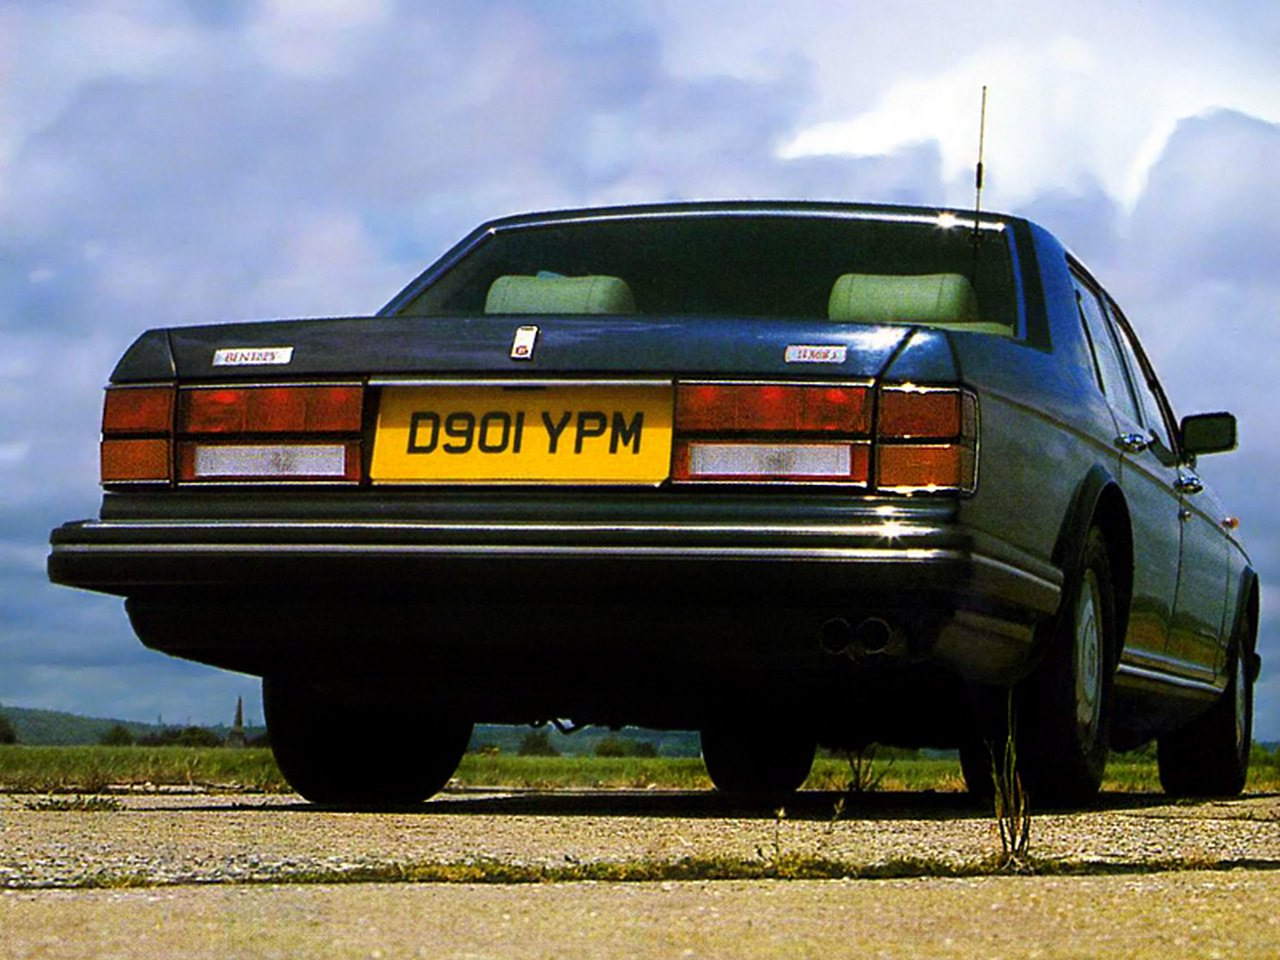 Bentley-Turbo-R-youngtimer-01.jpg